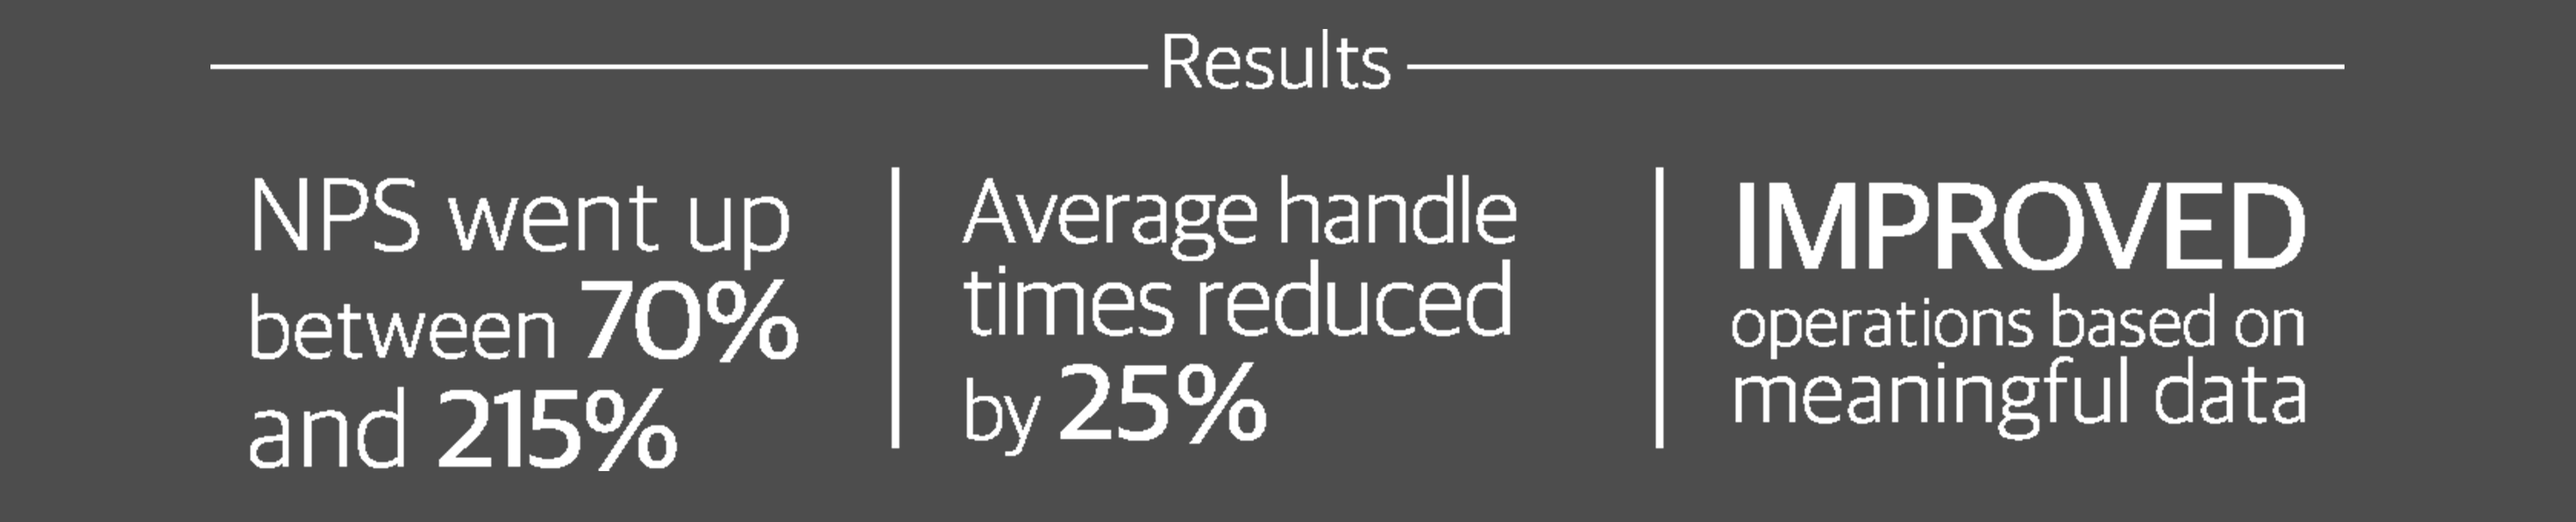 We helped find immediate self-help improvements and in the end achieve a better Net Promoter Score